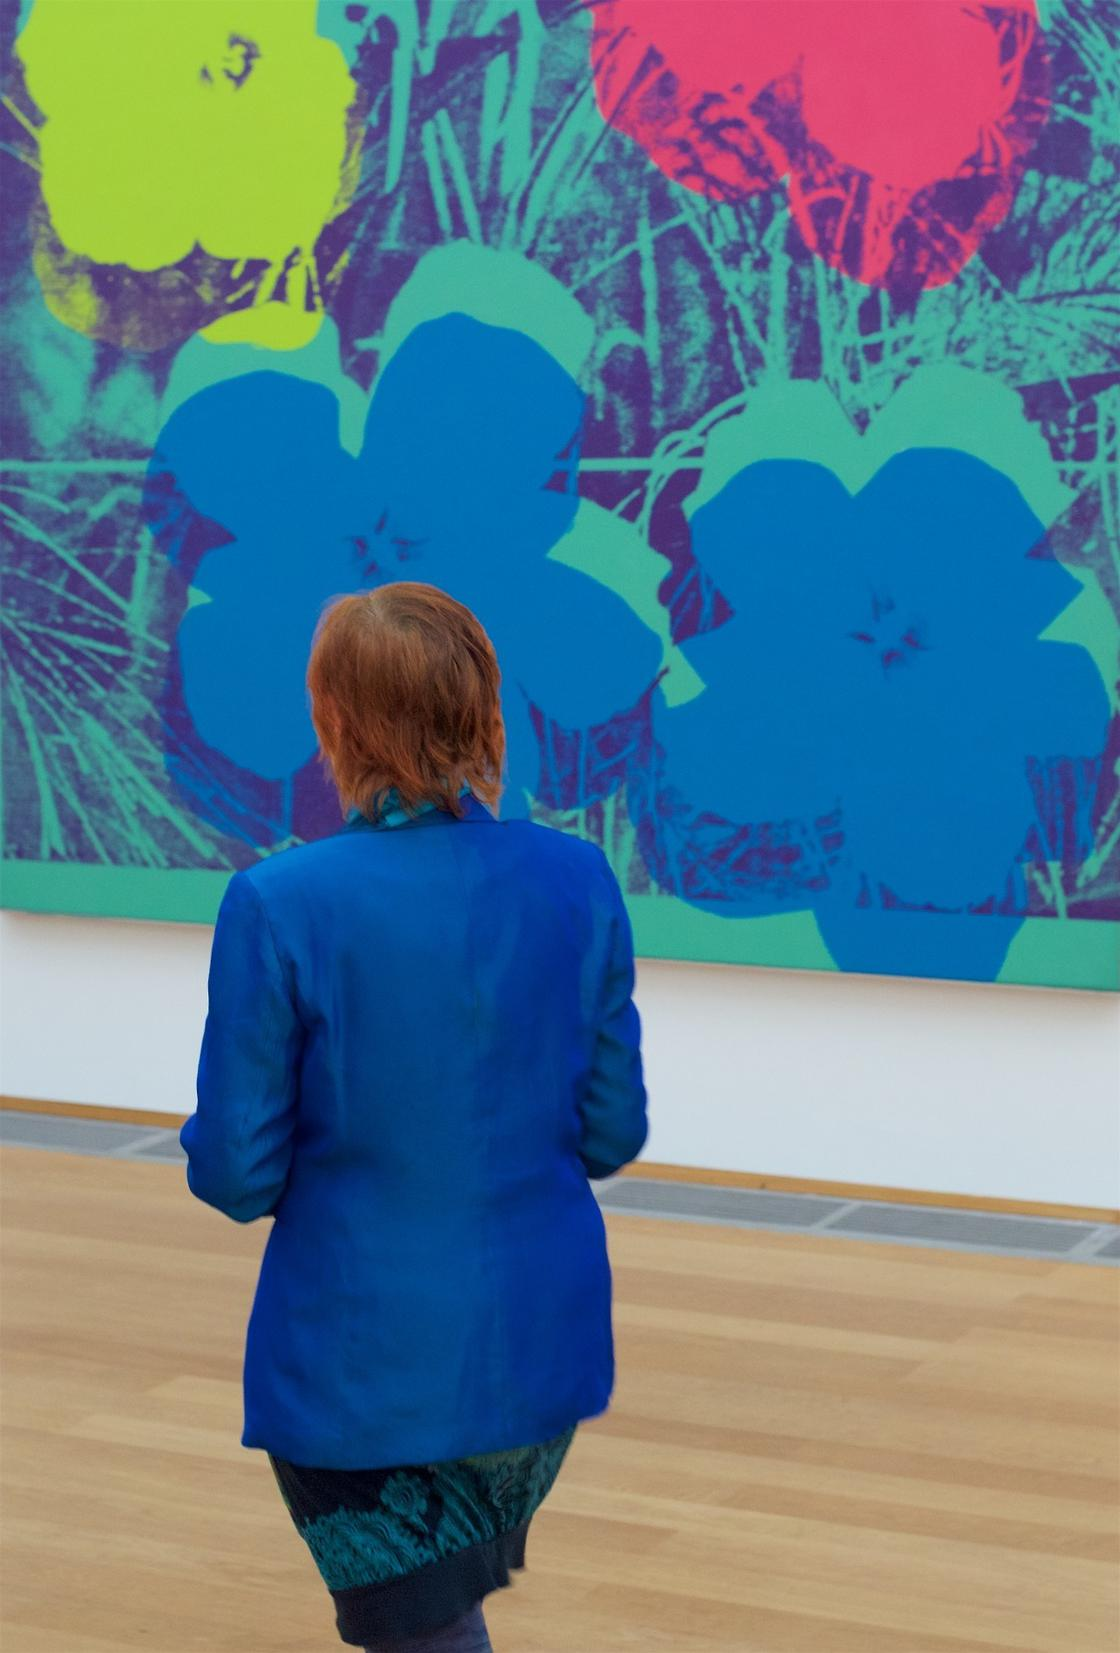 He captures the similarities between the paintings and the visitors